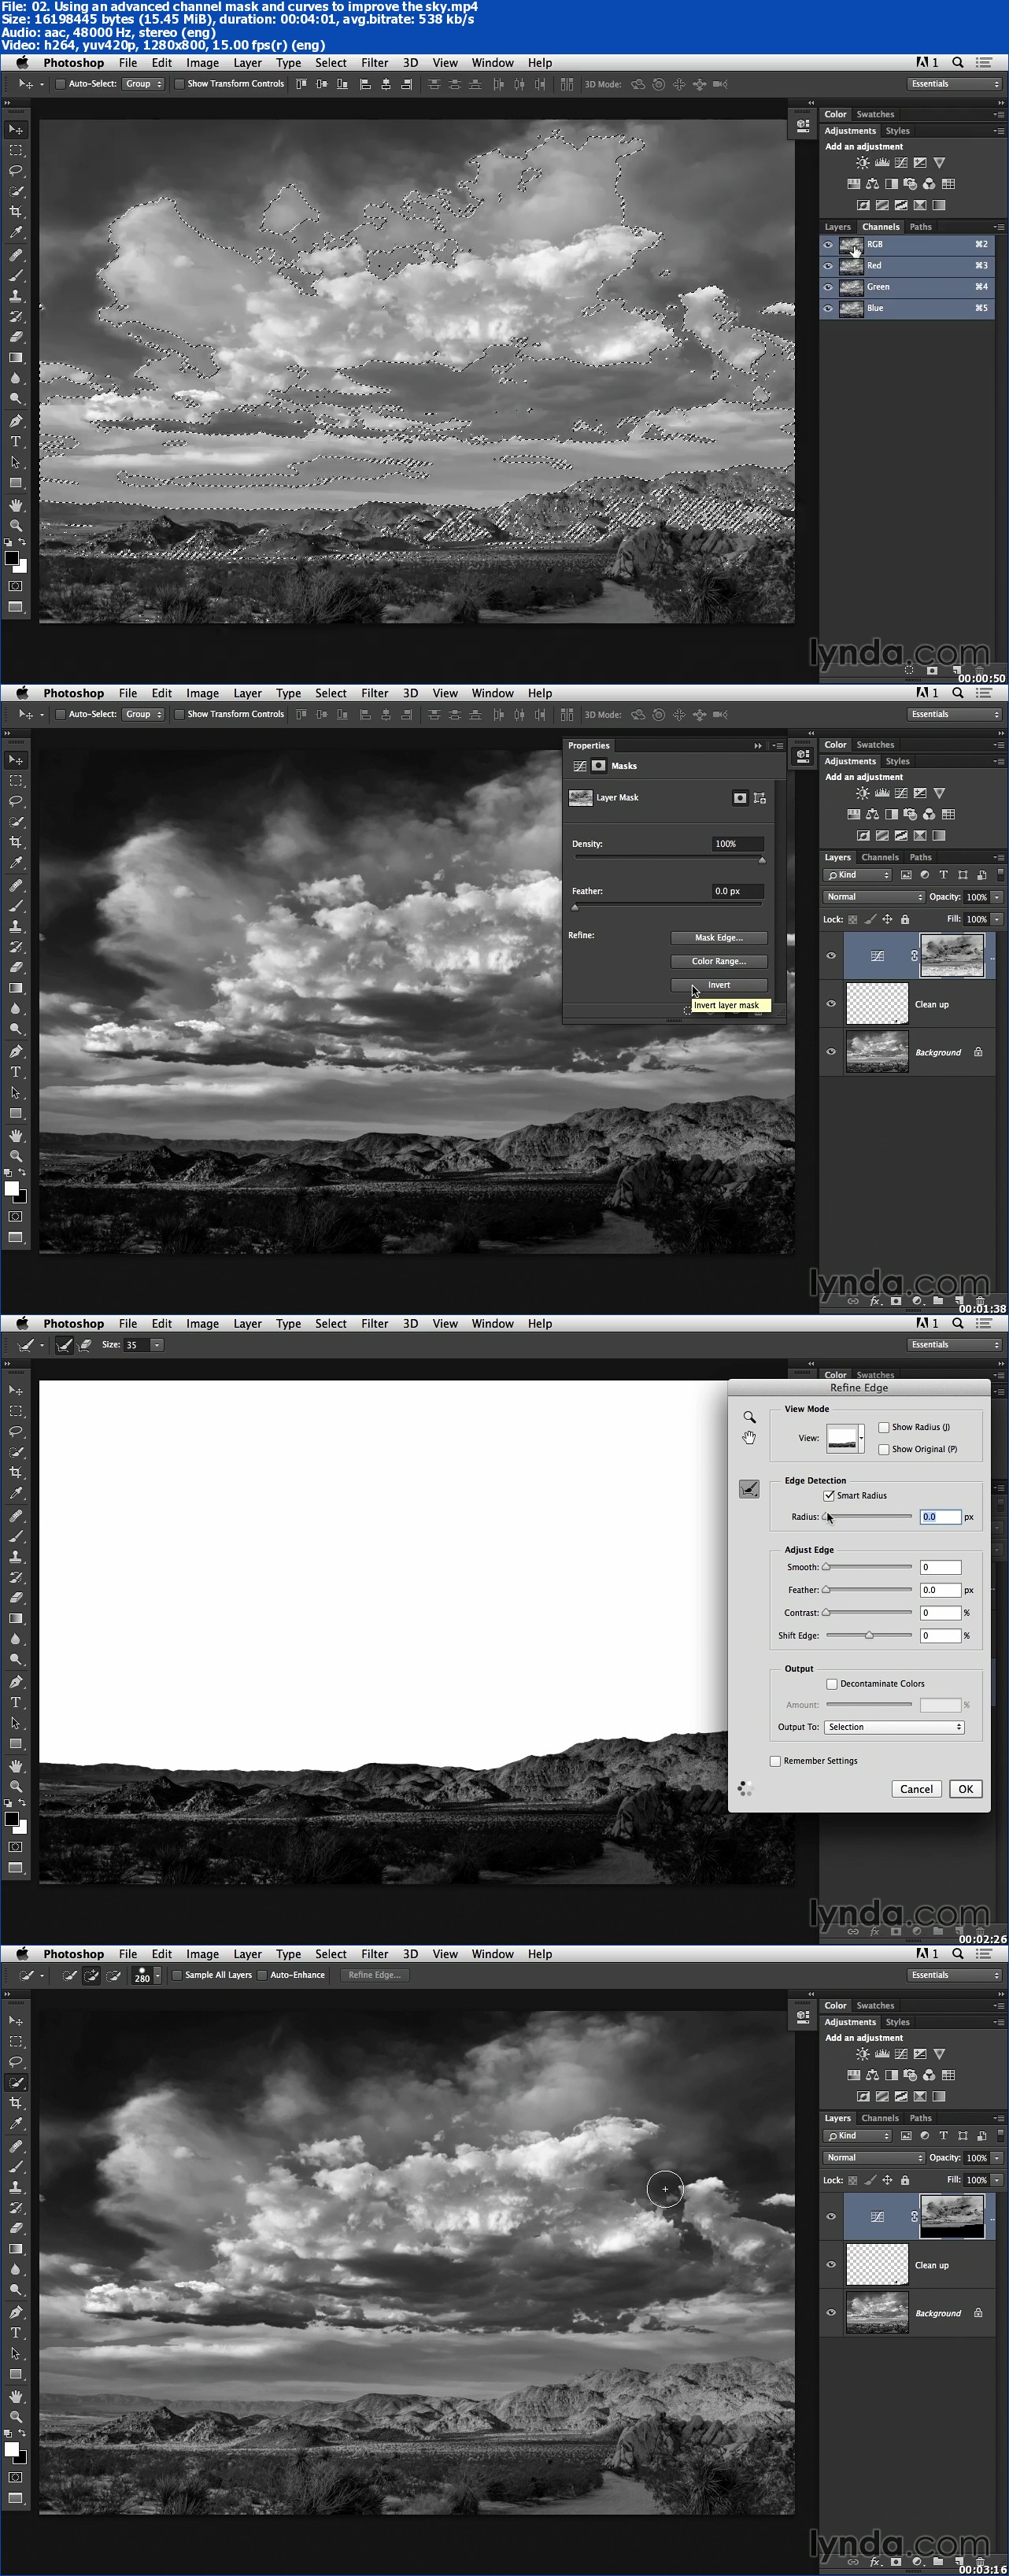 Lynda - Black-and-White Project: Creating a Dramatic Landscape with Lightroom and Photoshop